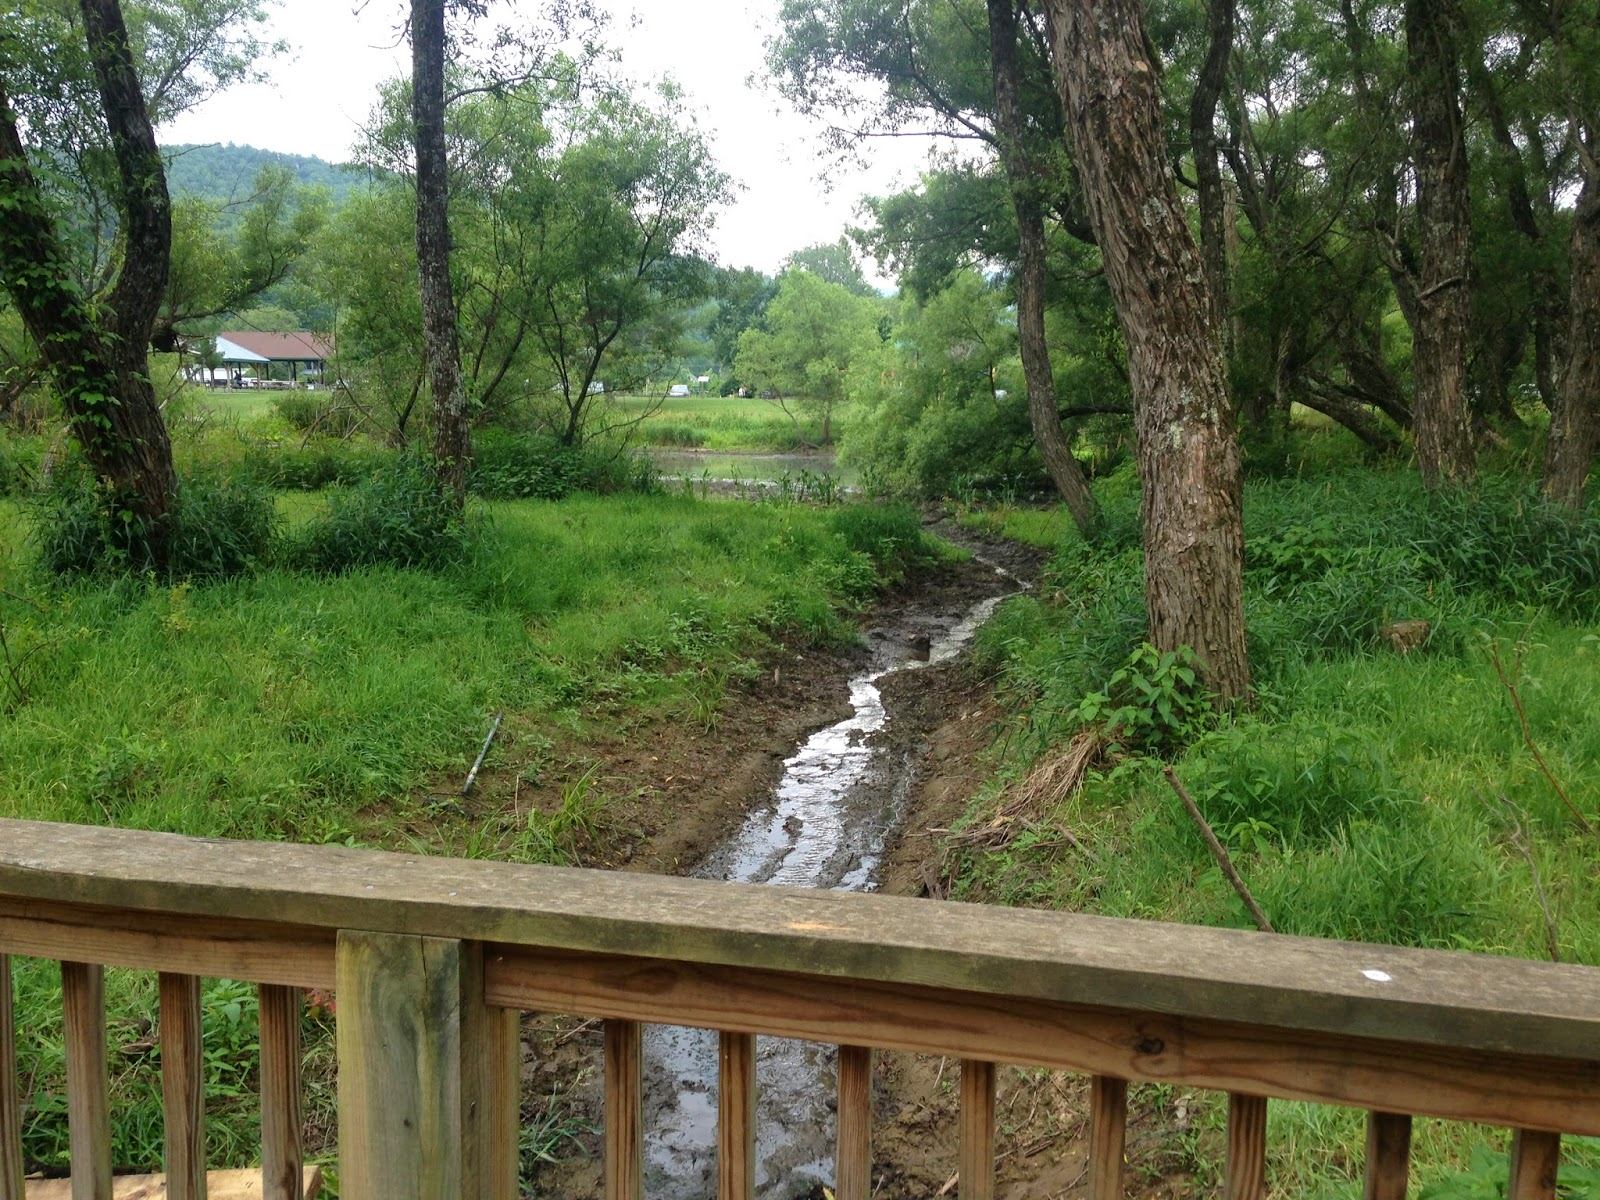 valle crucis catholic single men Valle crucis: the first rural historic community in north carolina nearly 40 years ago formal investigations for the ancient history of valle crucis began and ever.